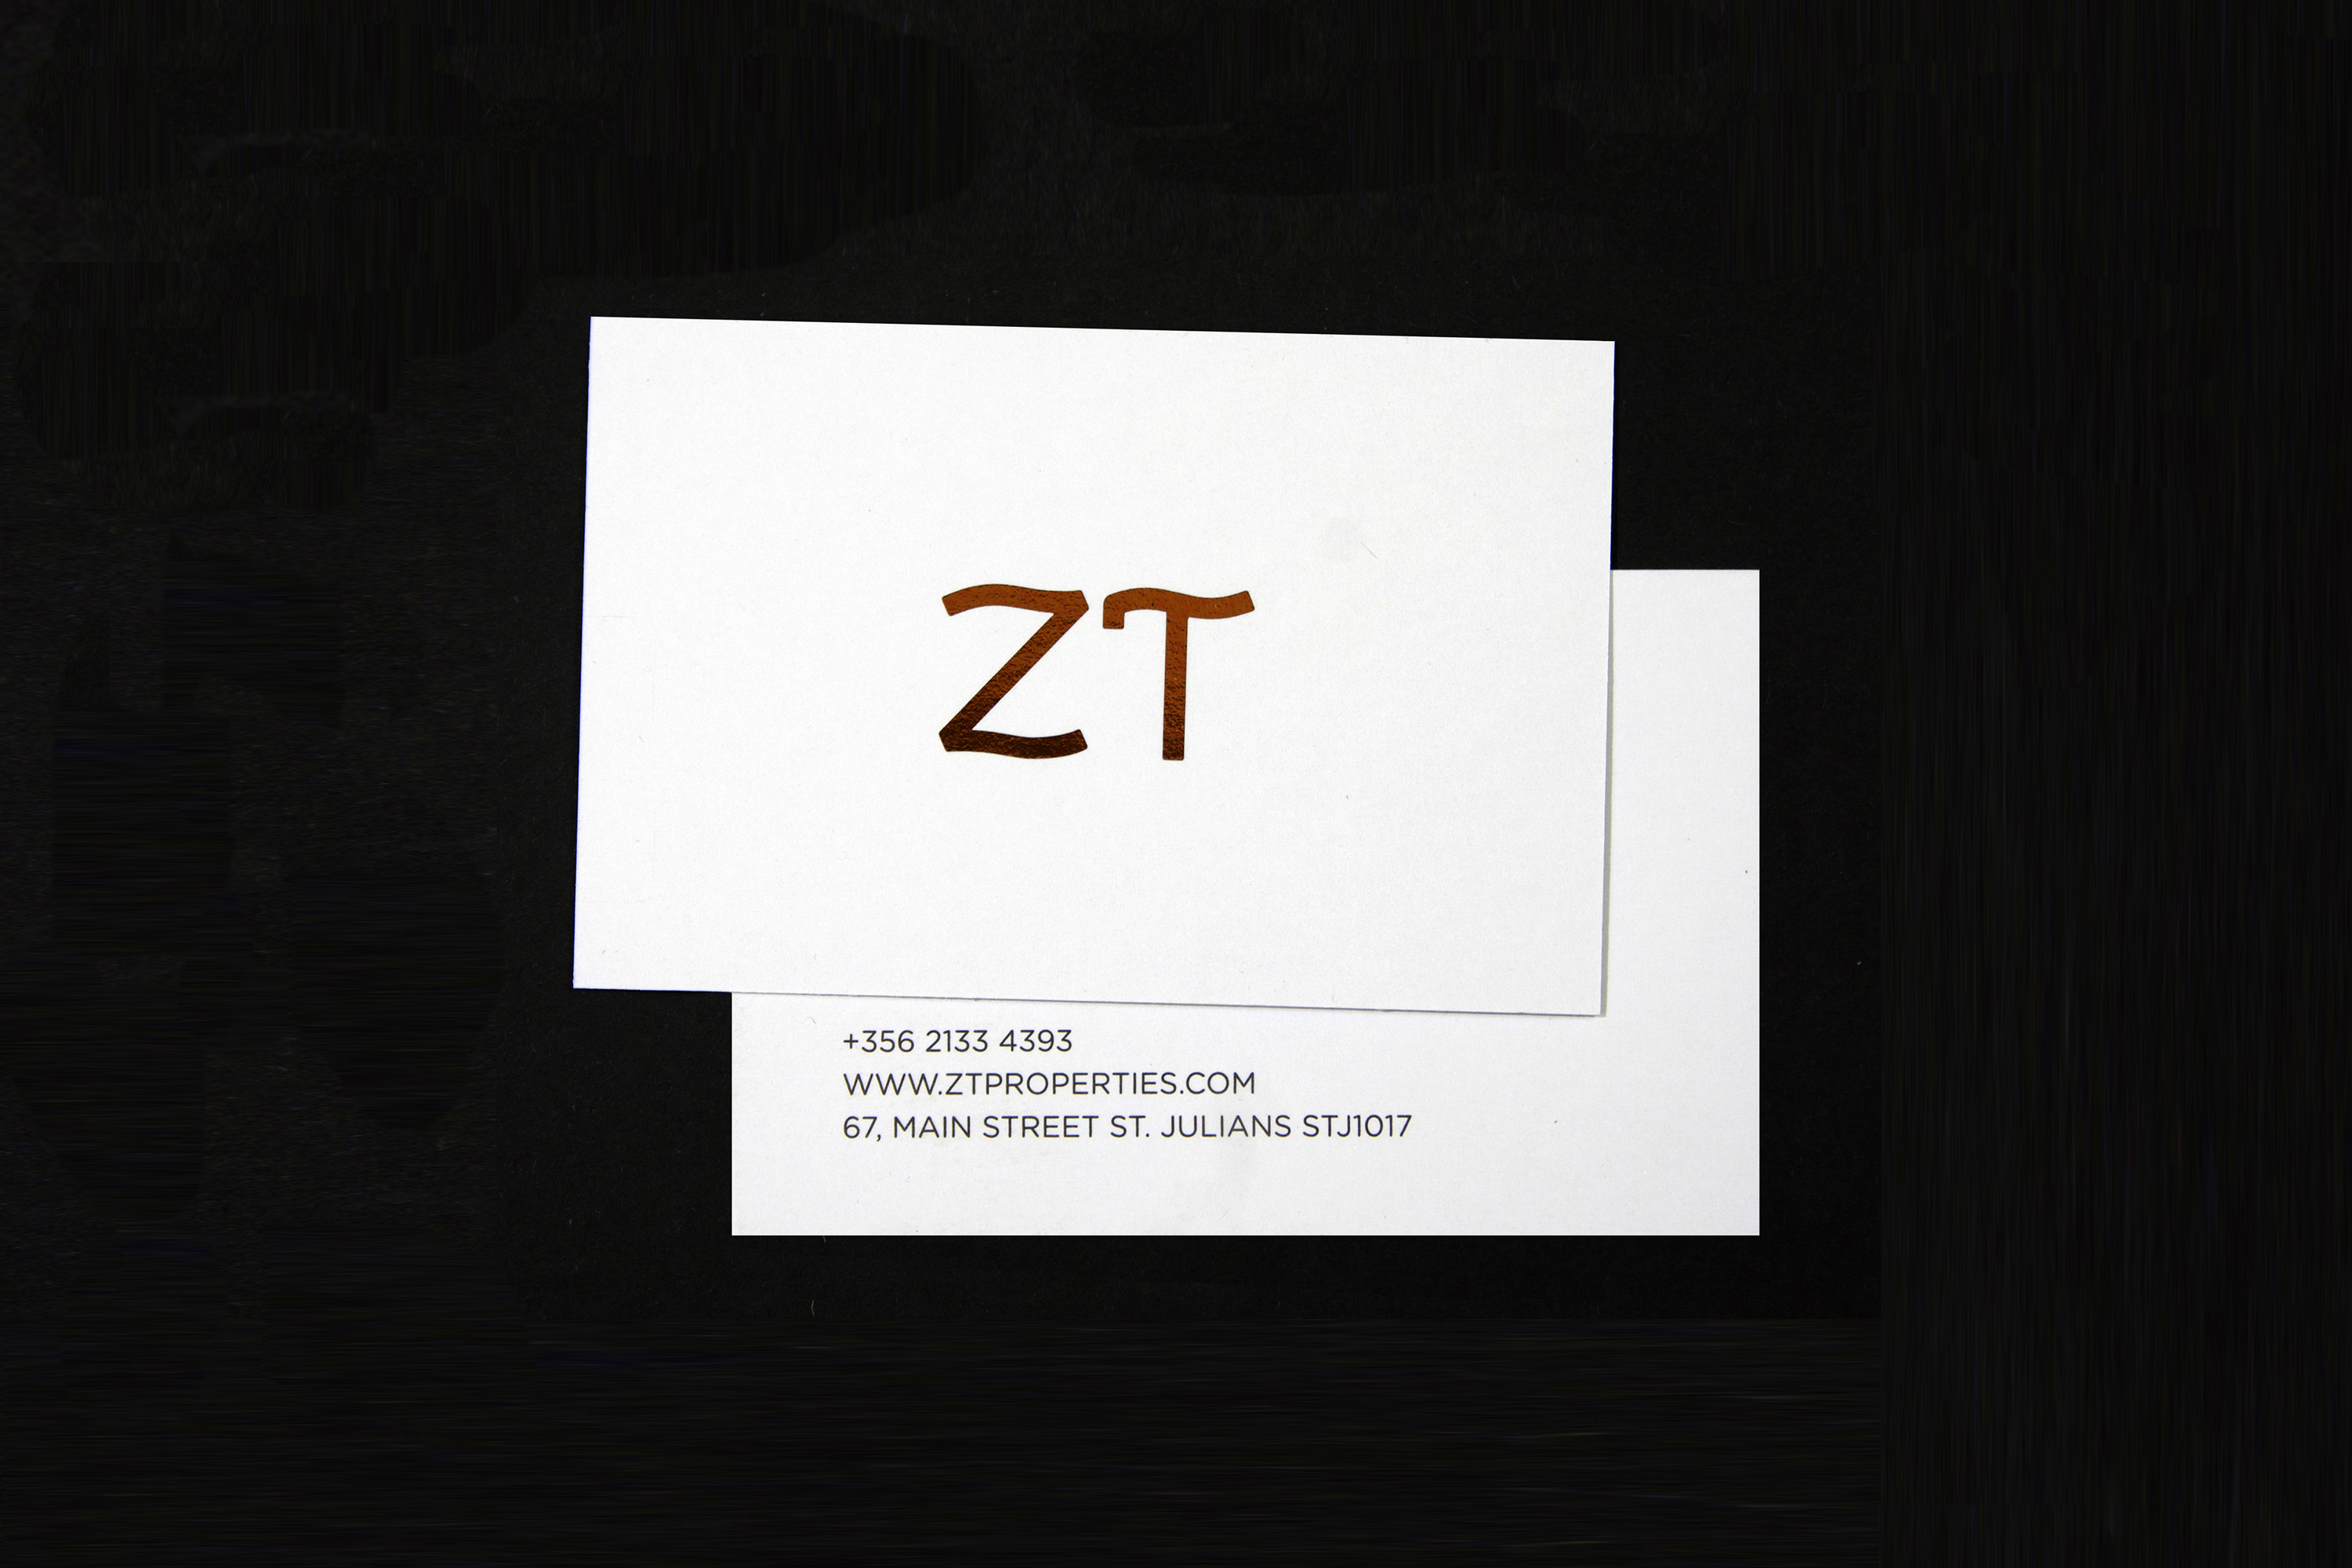 2point3 ZT Properties